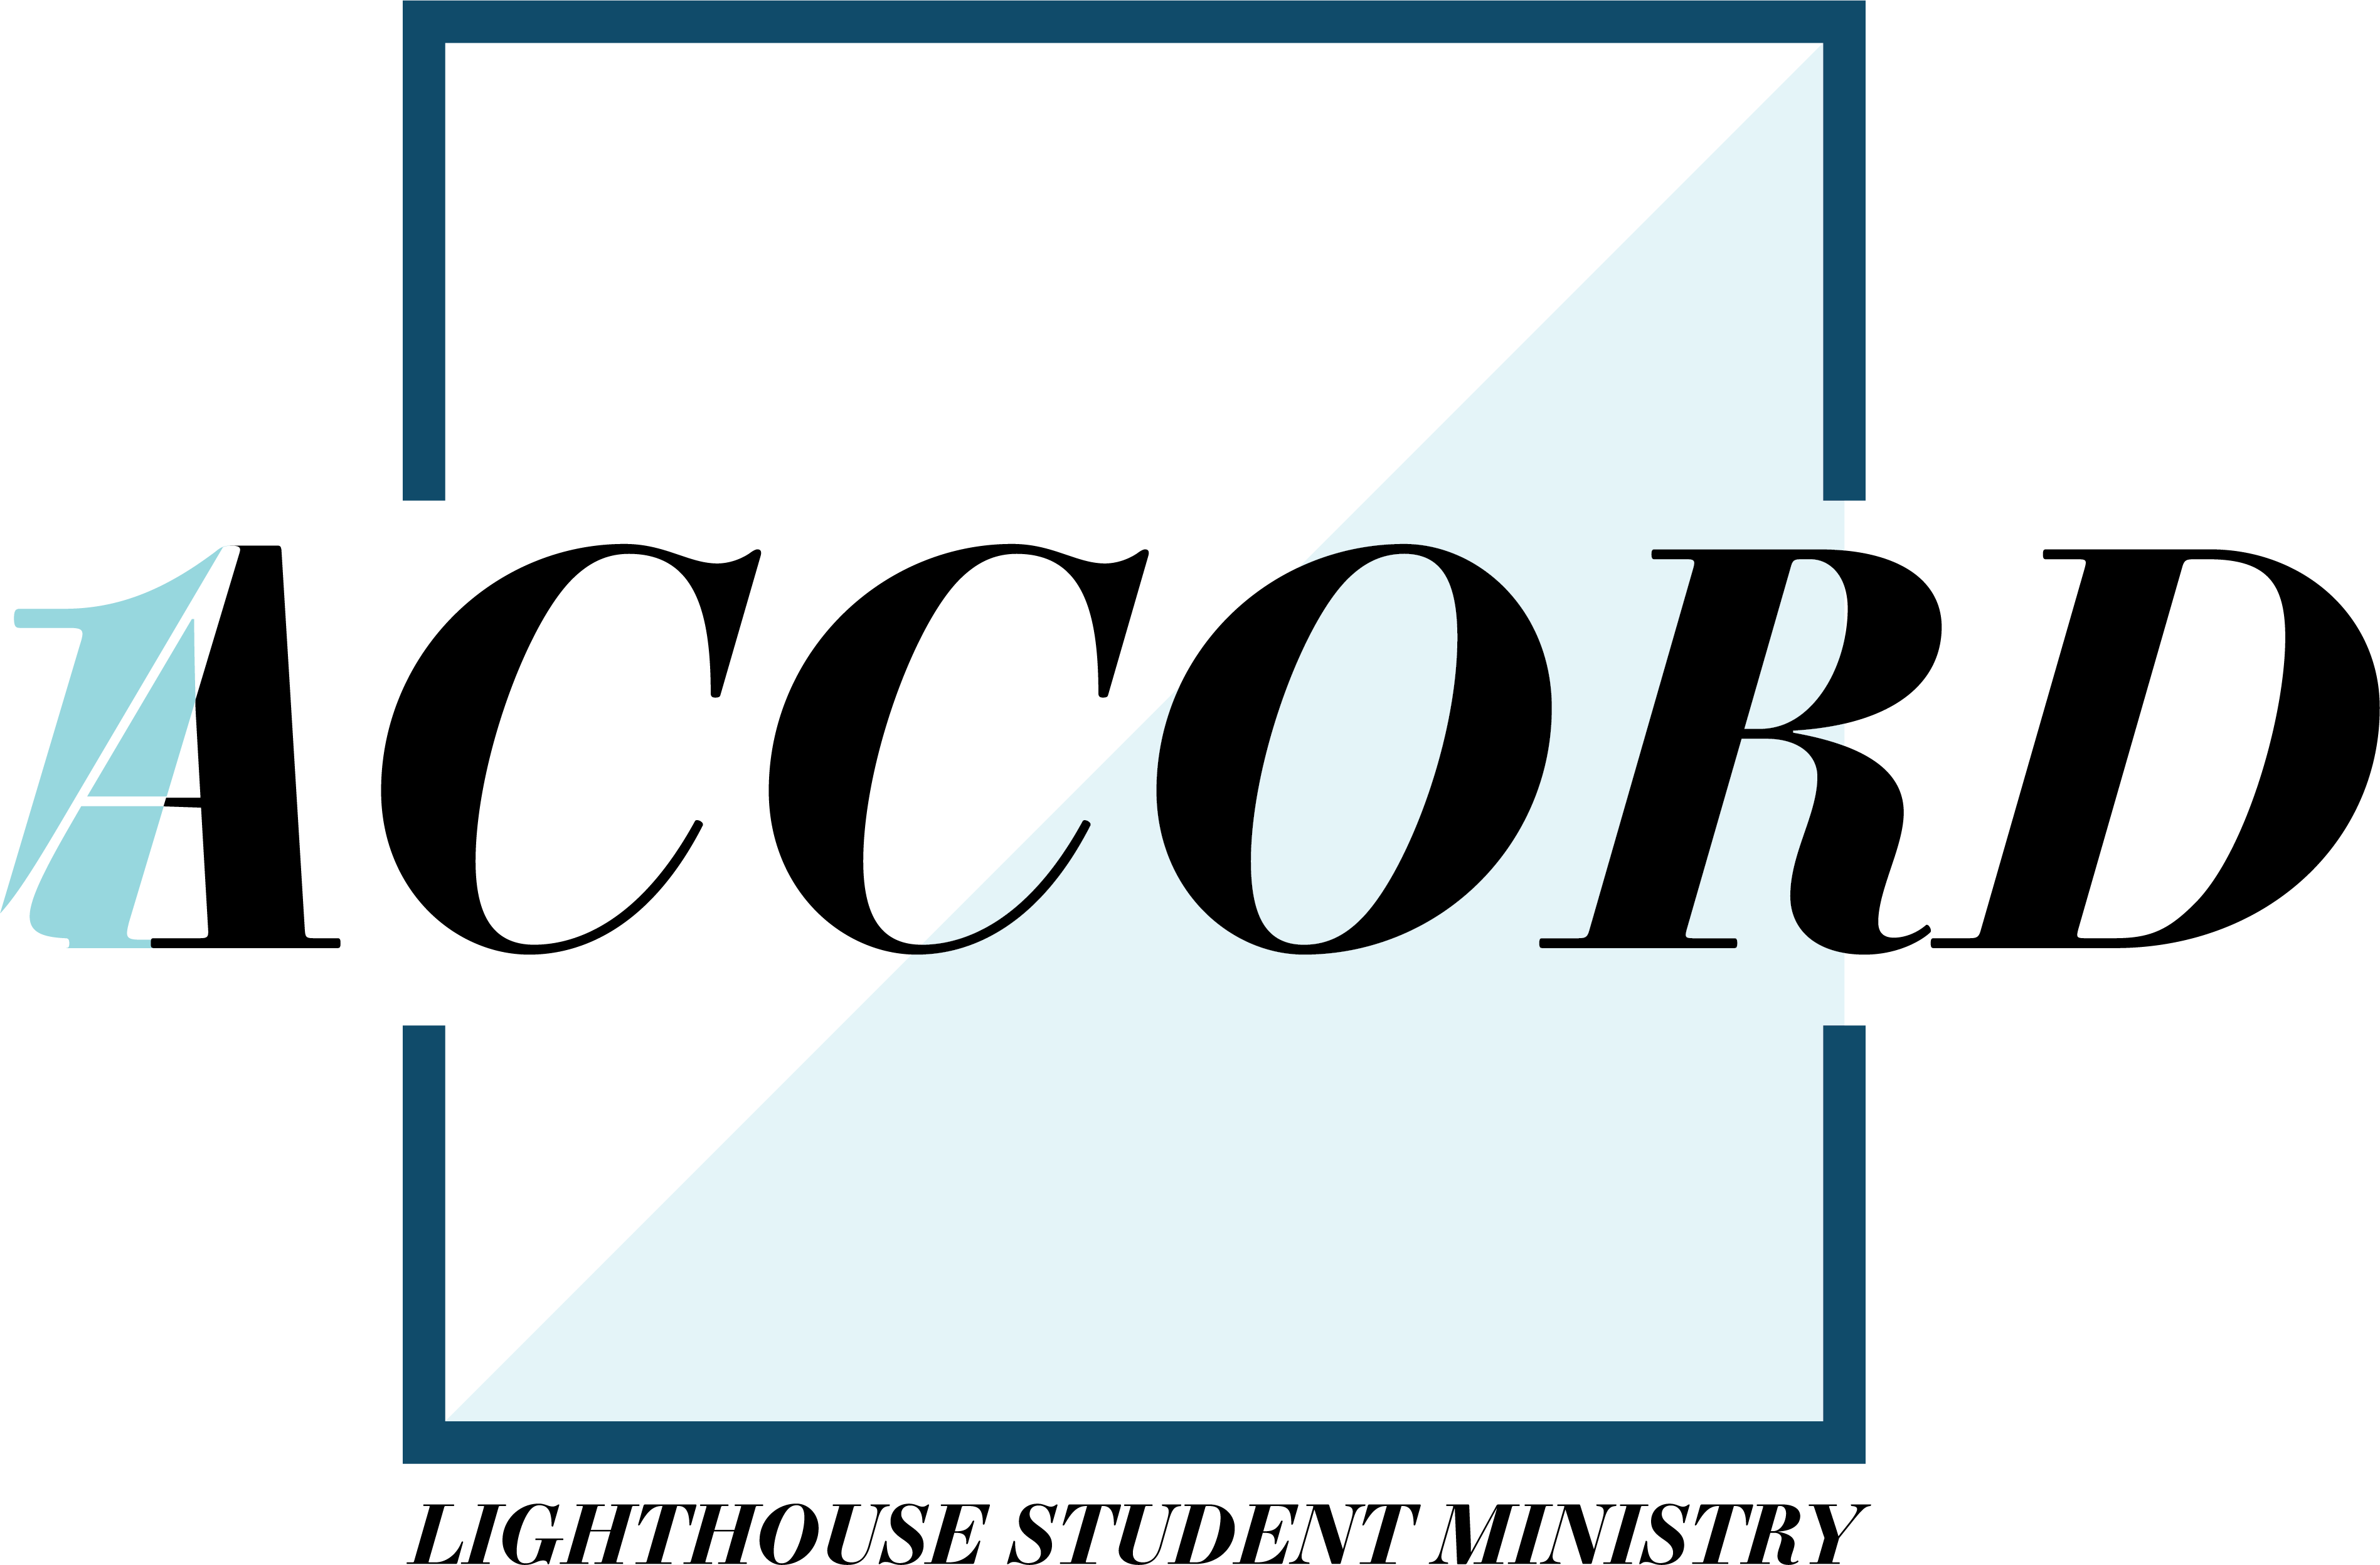 OneAccord_logo_alternate_transparent